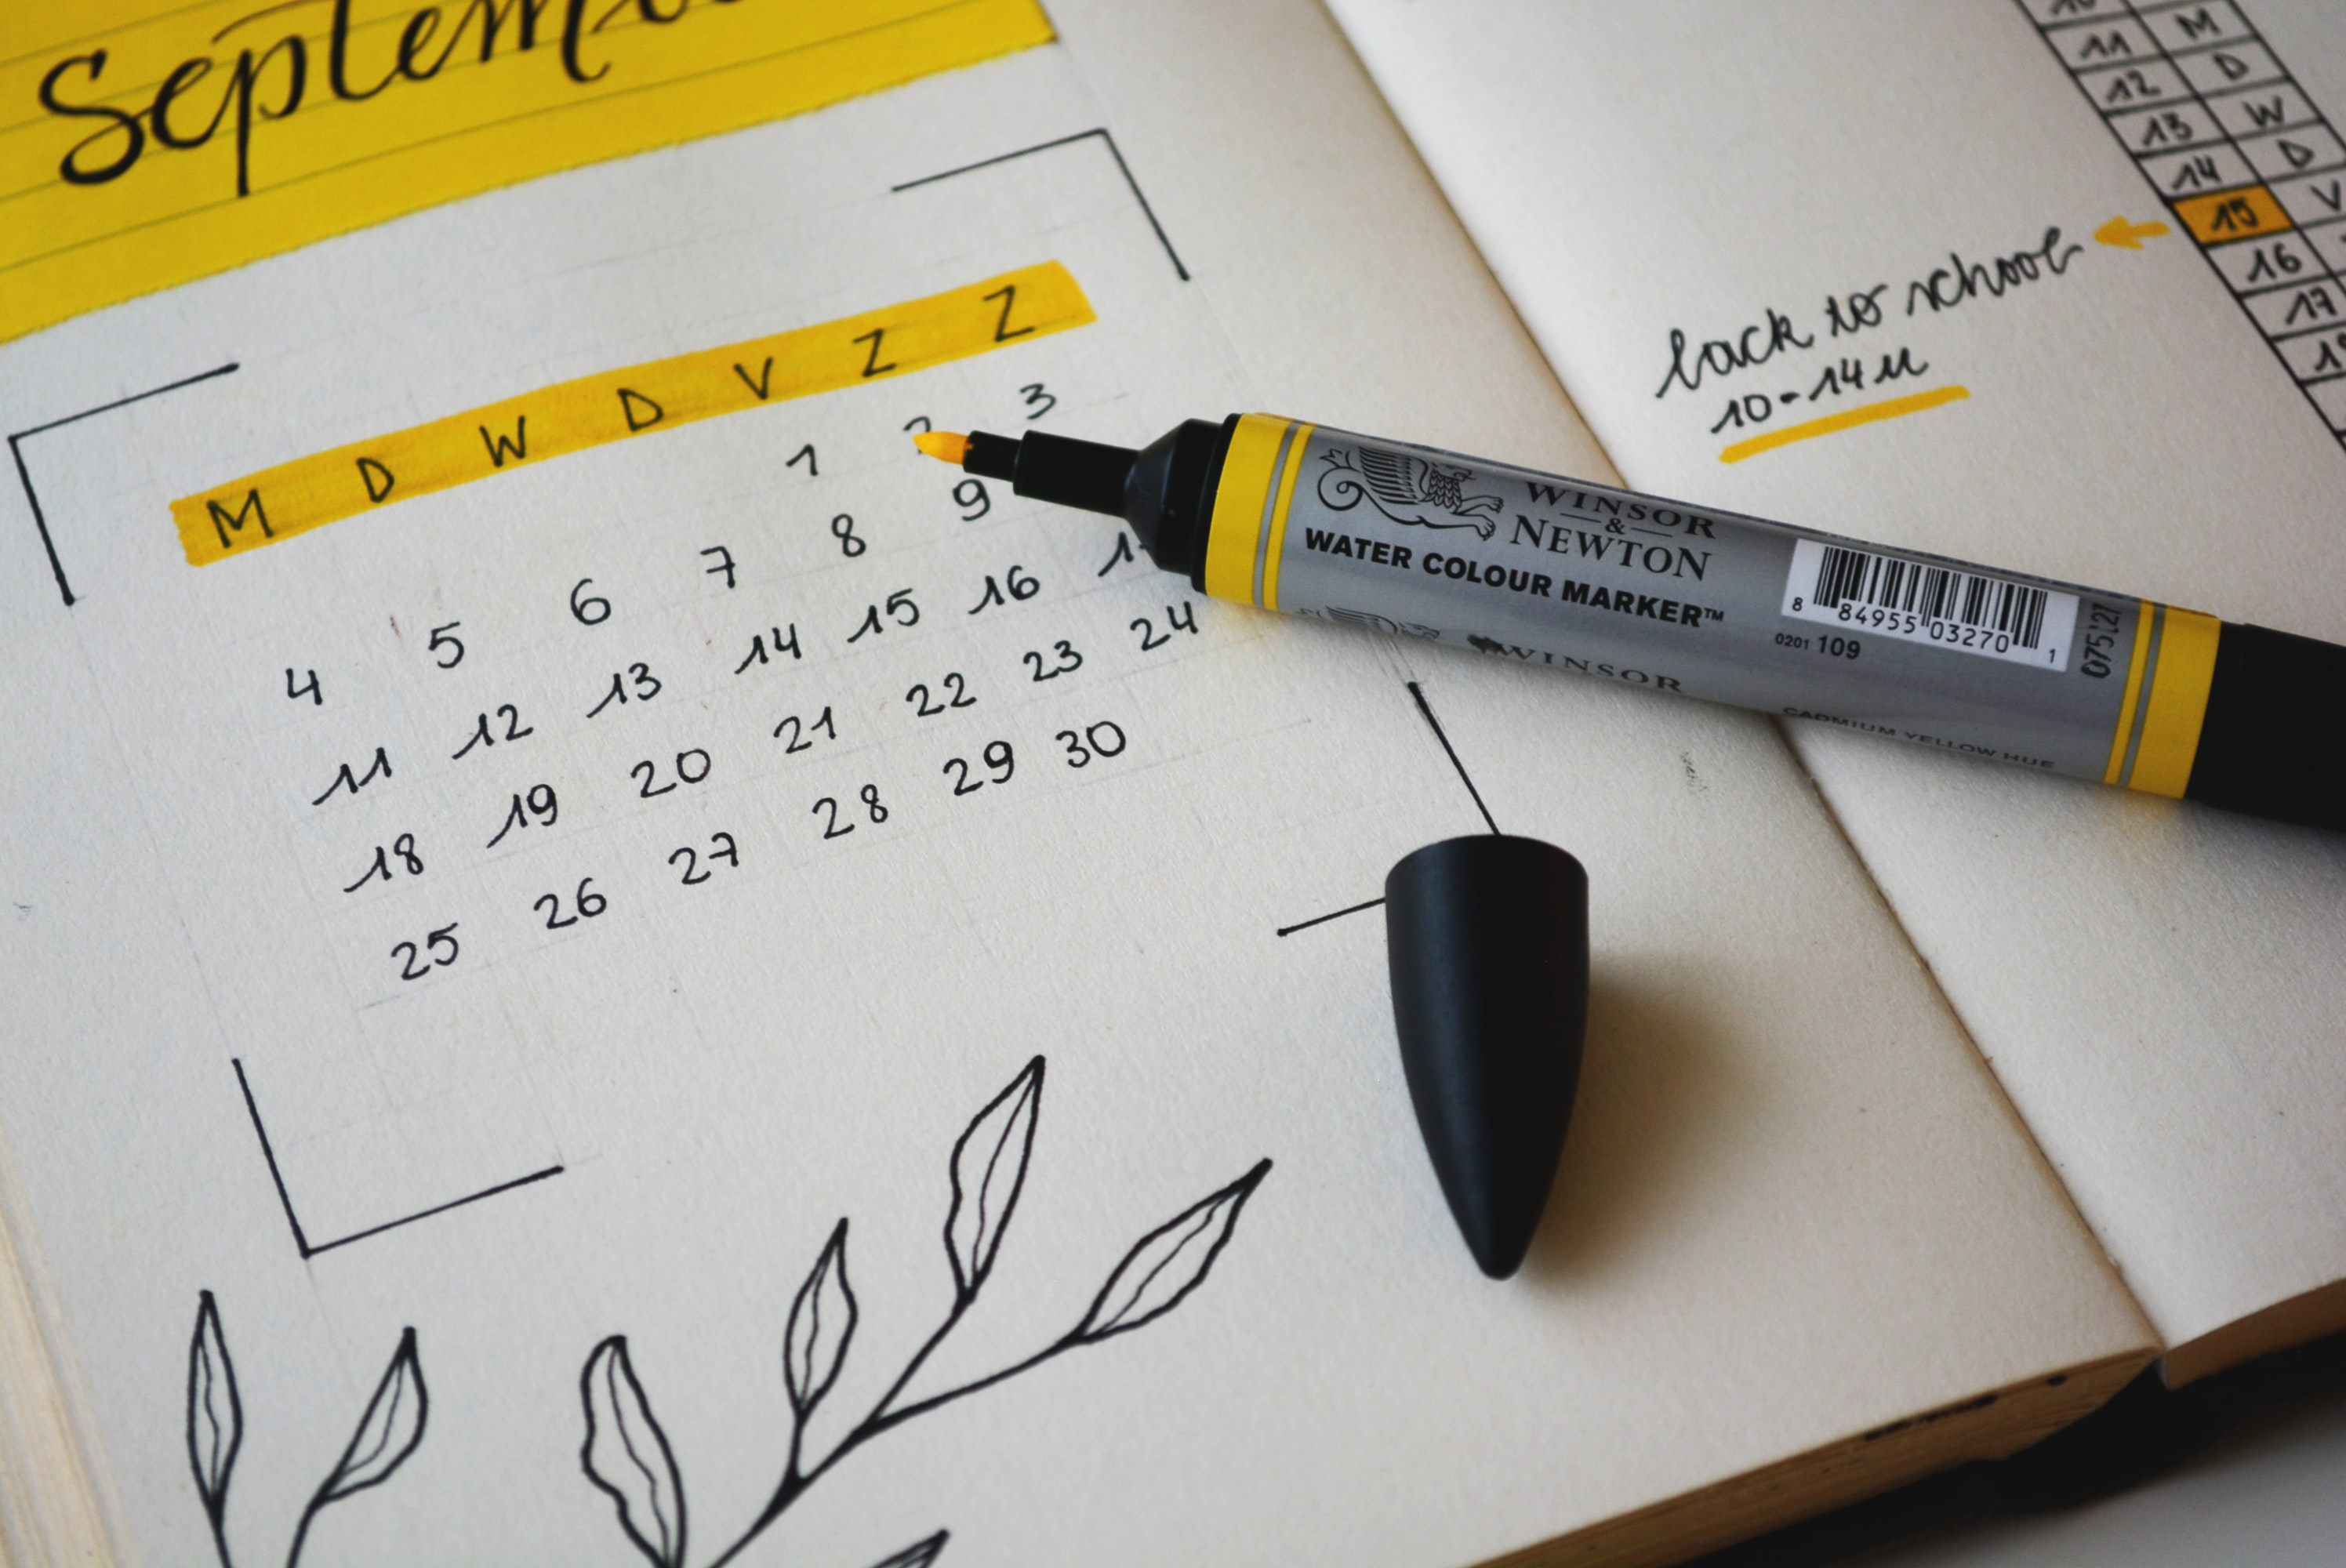 journal with September calendar written out and highlighted in yellow